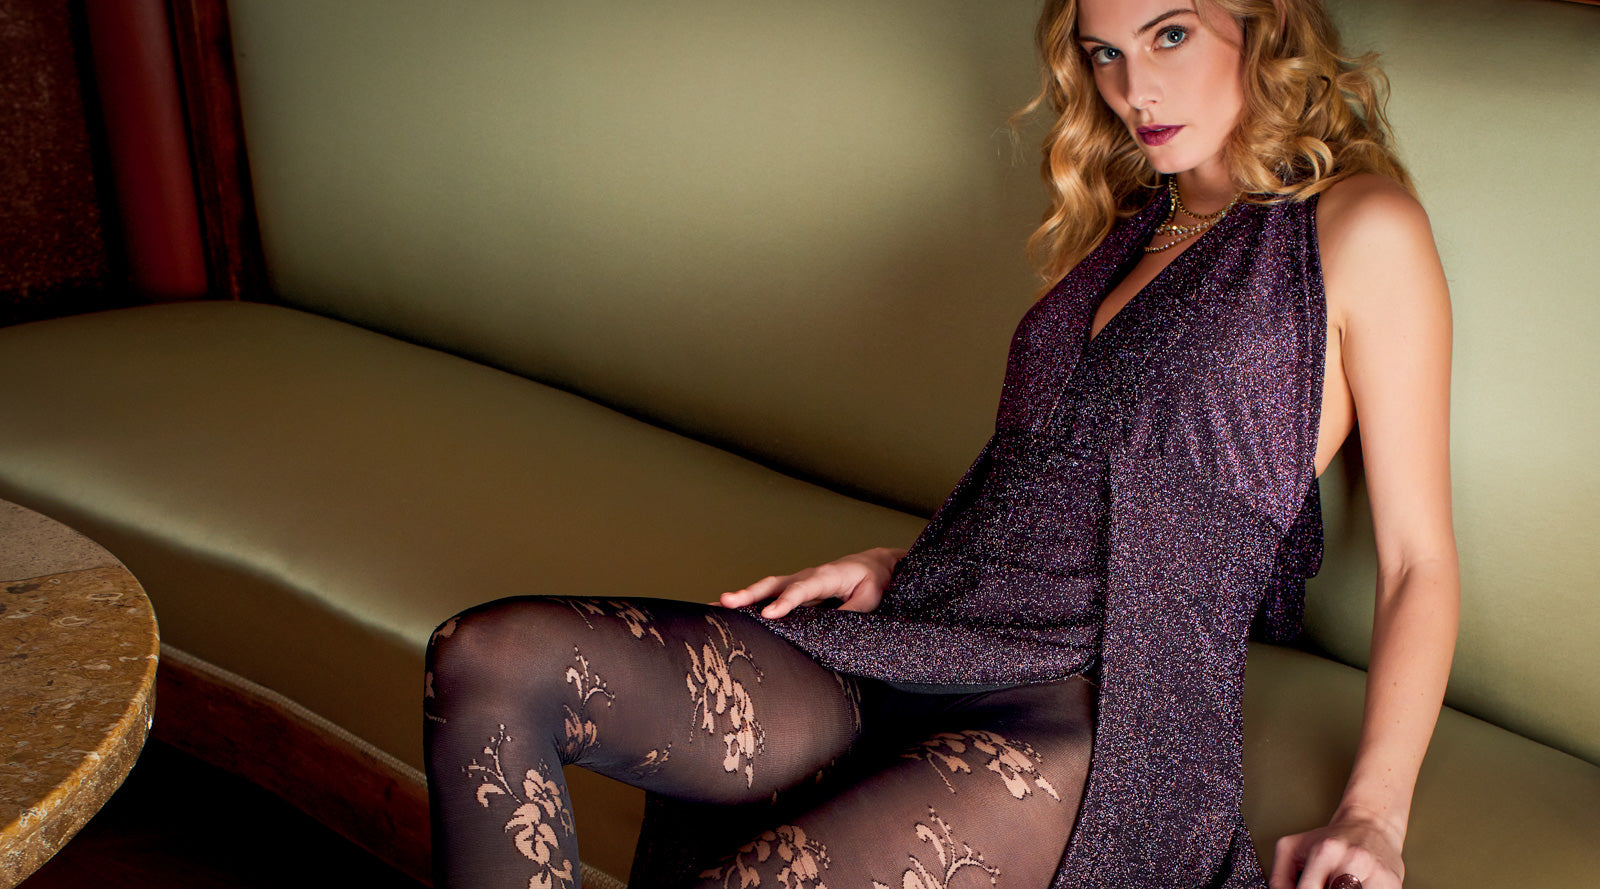 The Best Winter Hosiery For Every Occasion Hosiery Box Pantyhose are a type of hosiery made of a sheer material that covers from the waist to the toes. the hosiery box